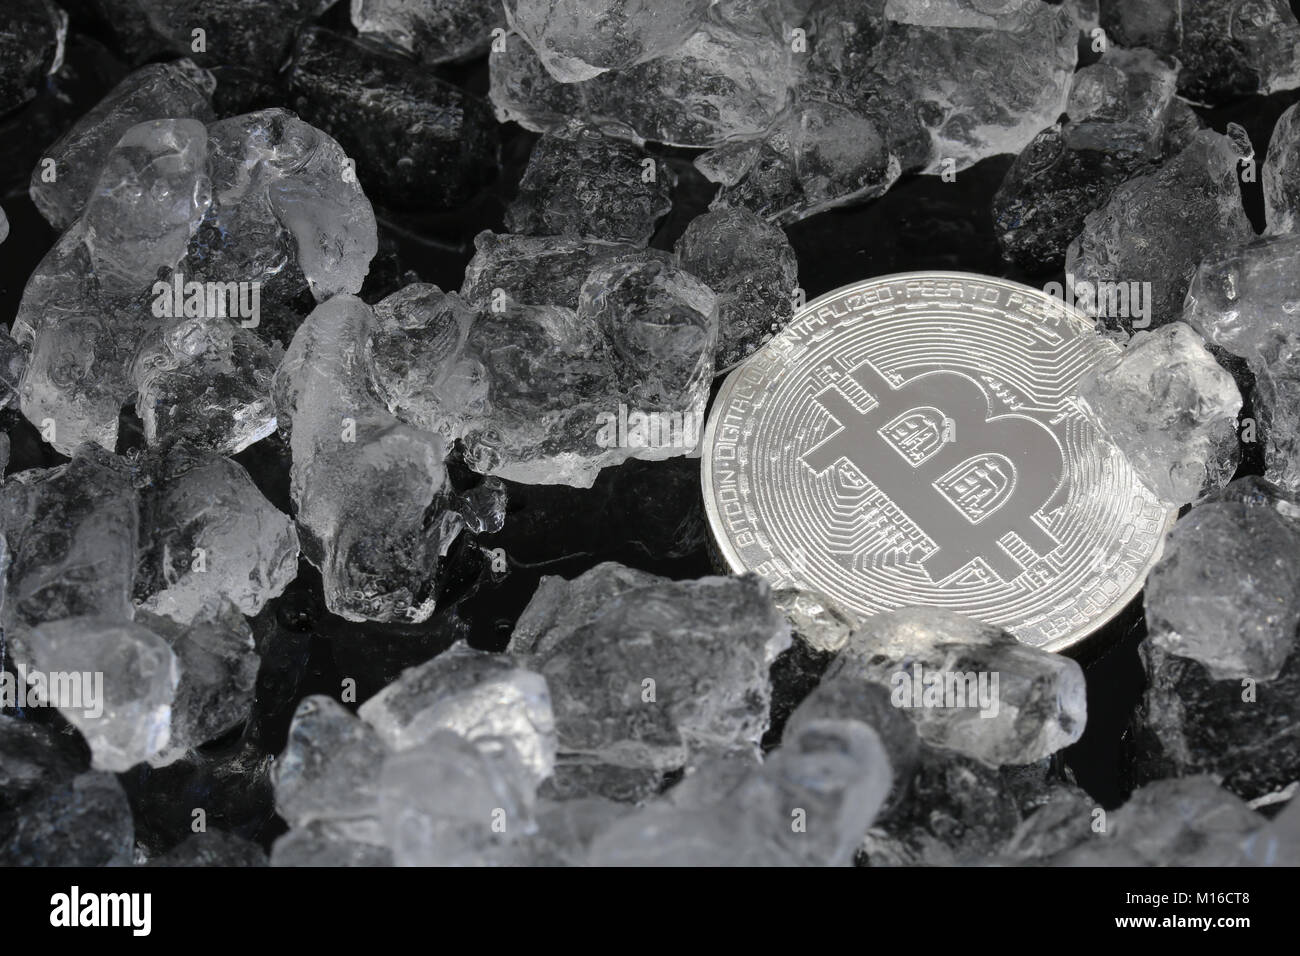 bitcoin on crushed ice background - Stock Image